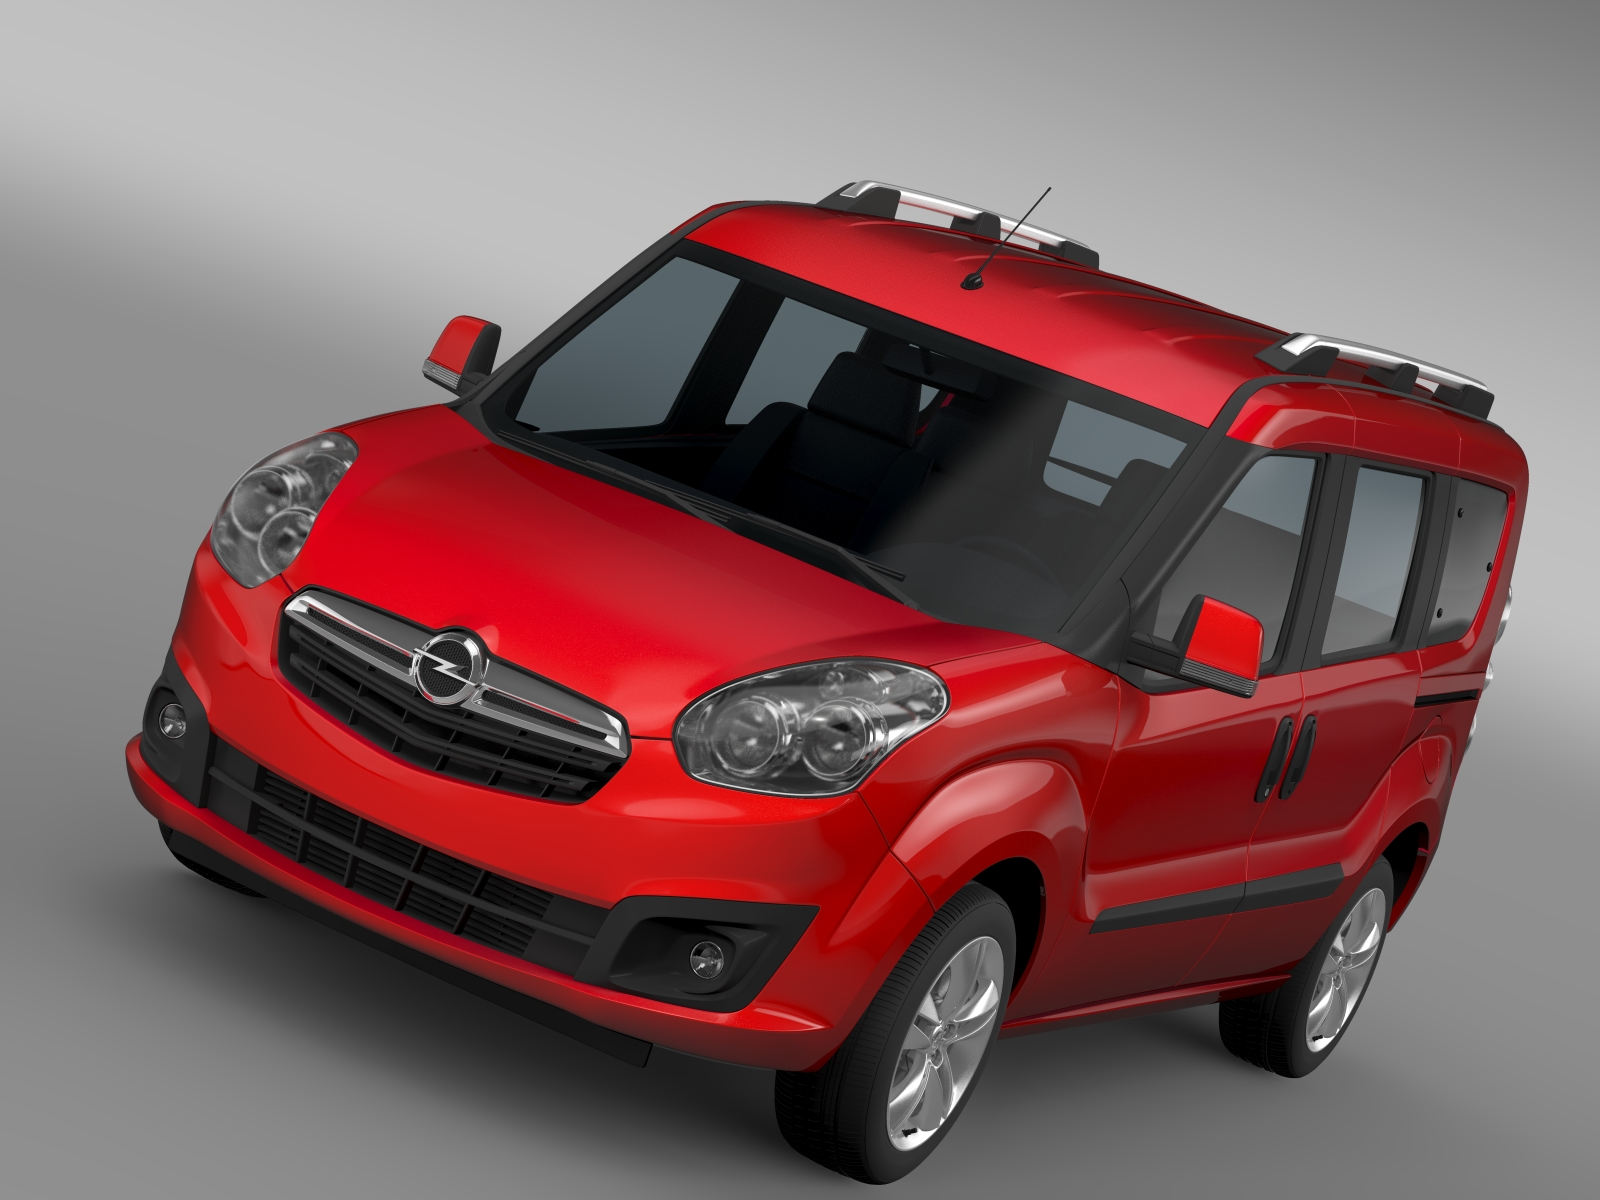 opel combo tour (d) 2015 3d model 3ds max fbx c4d